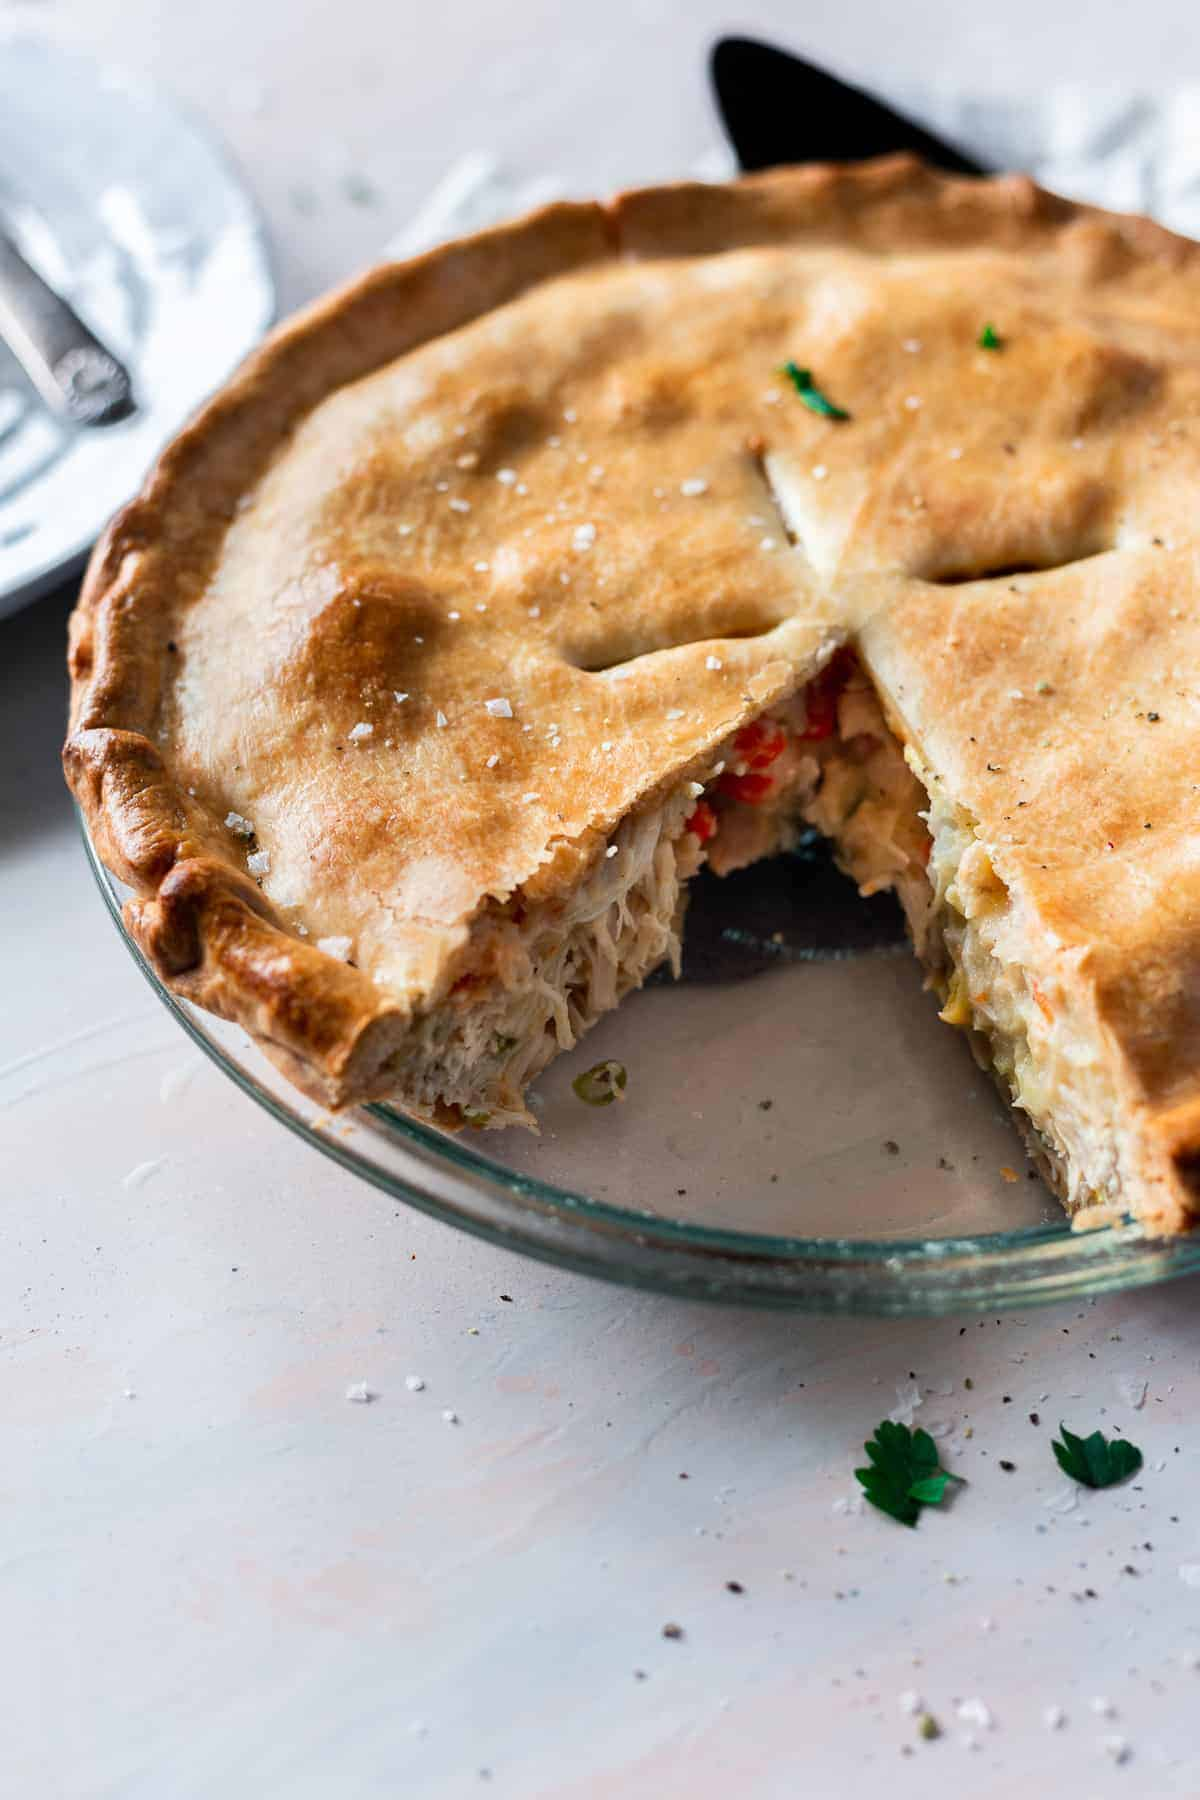 Nothing beats a piping hot homemade chicken pot pie, and this recipe is doable for all levels of home chefs, from novice to expert! I love a simple comfort food recipe, and I've been sharing hundreds of them like this one on my site for years. You can make this chicken pot pie whether you've been cooking your whole life or have hardly touched your oven and want to give a simple recipe a spin! #chickenpotpie #chickenpotpierecipe #potpie #chickenrecipes #comfortfood